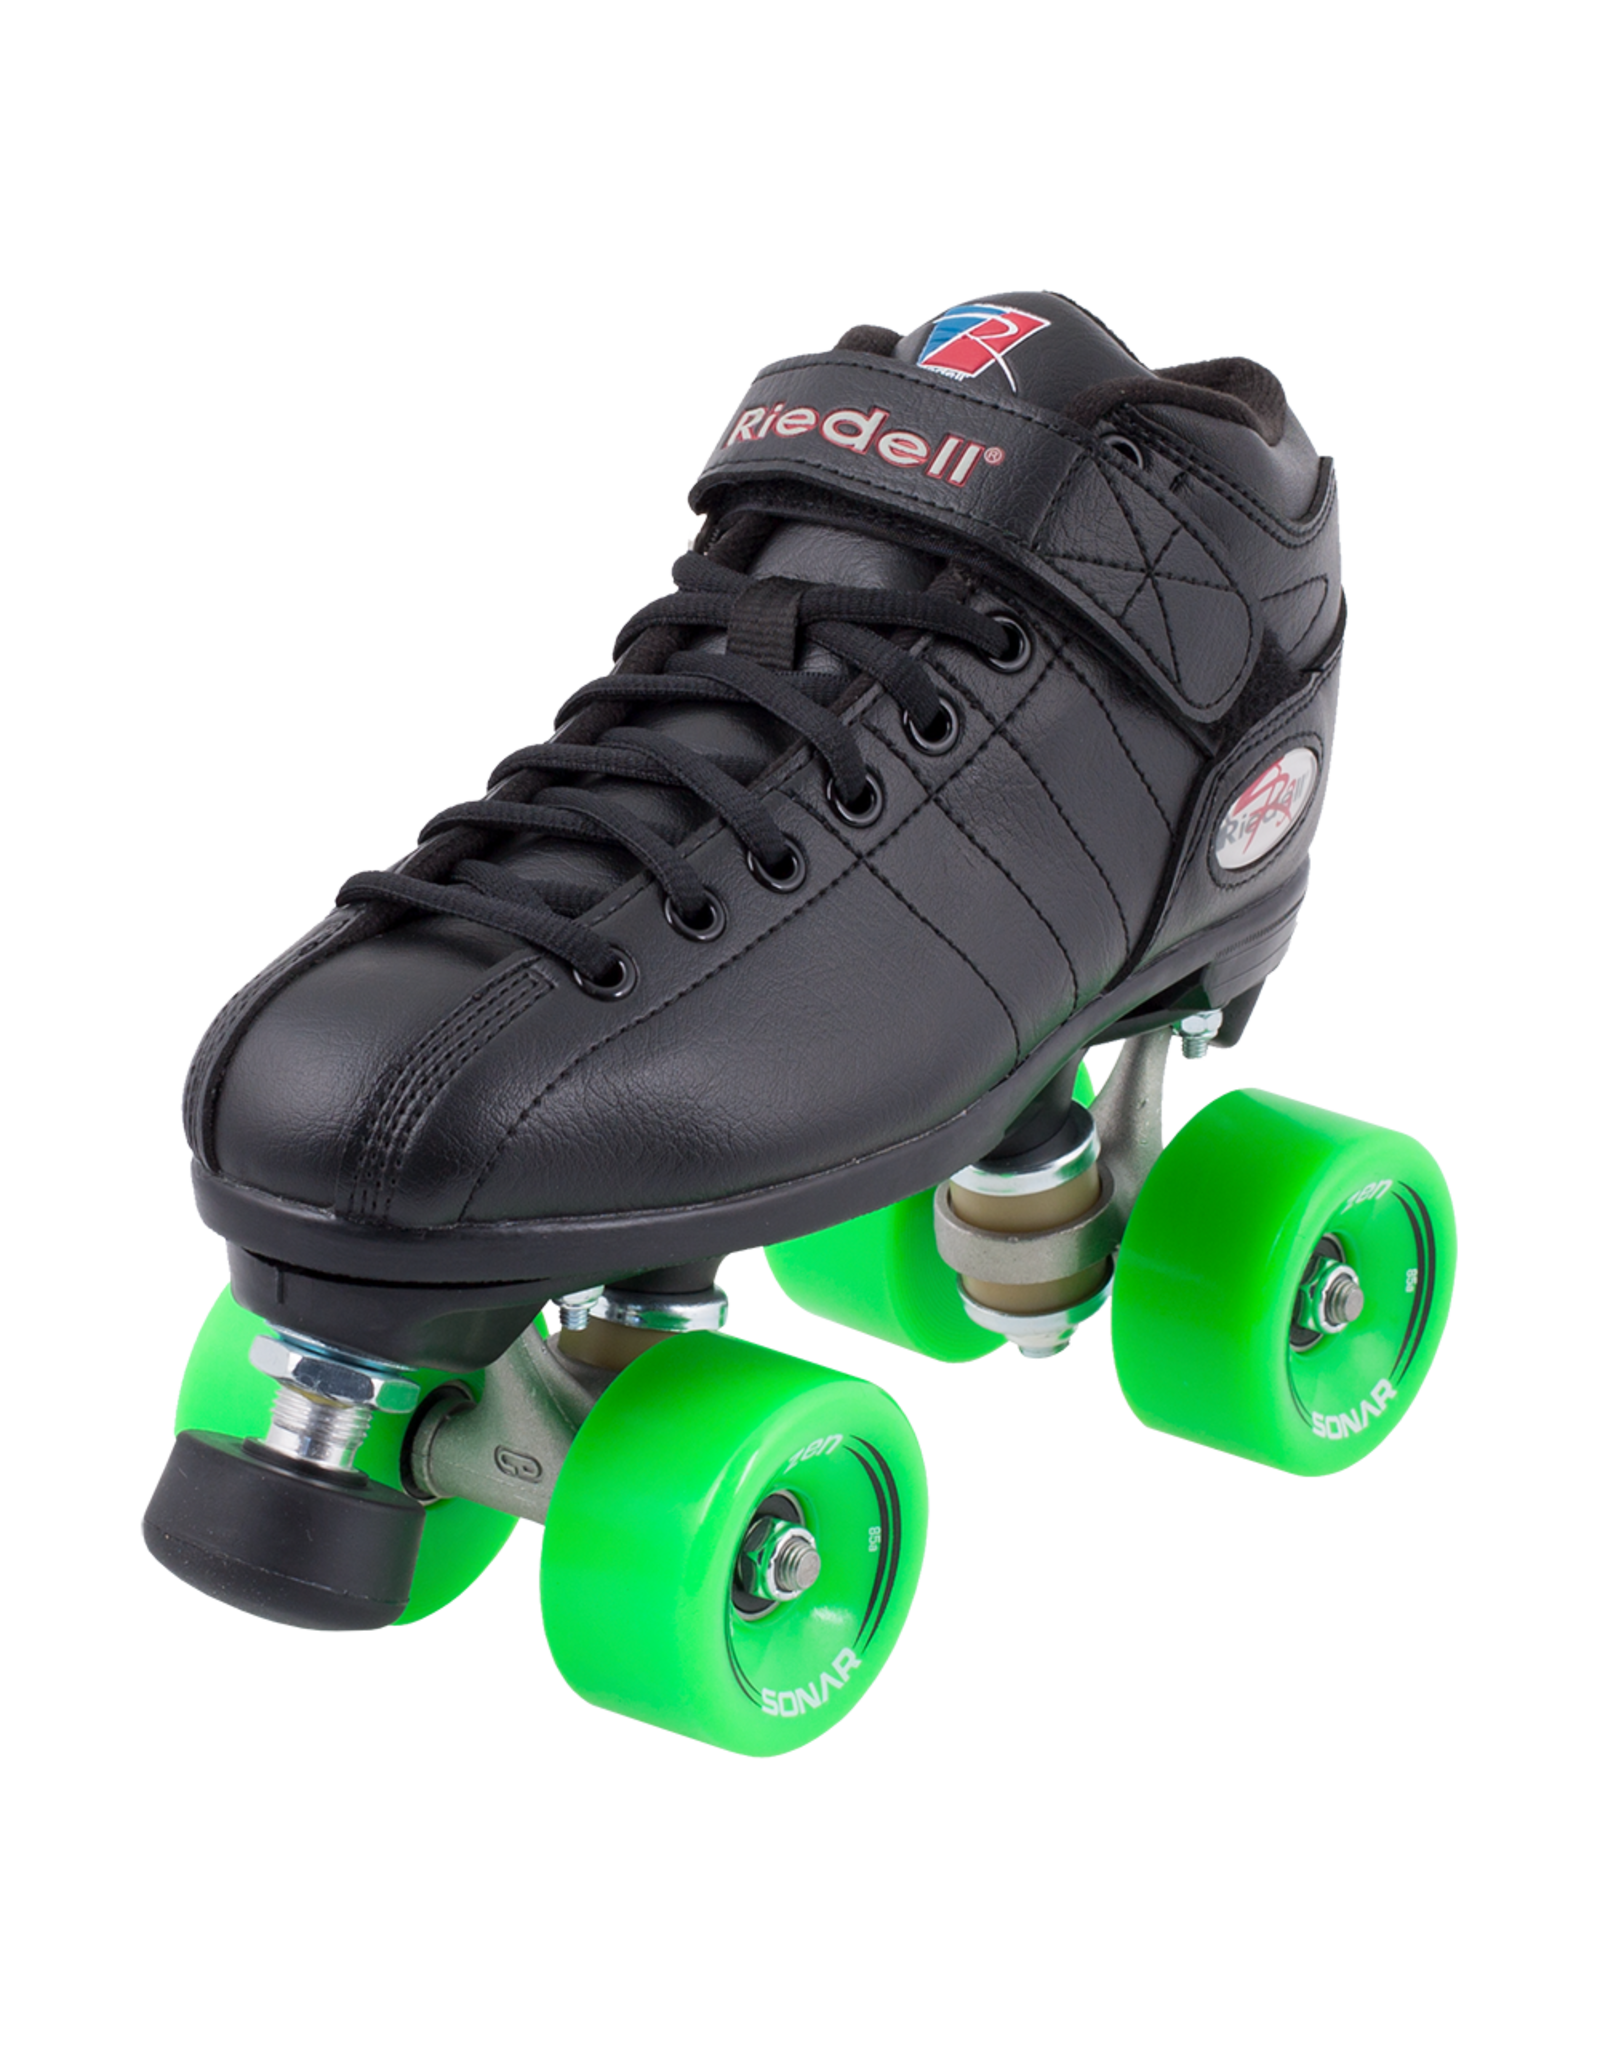 Riedell R3 Outdoor Skate, Black